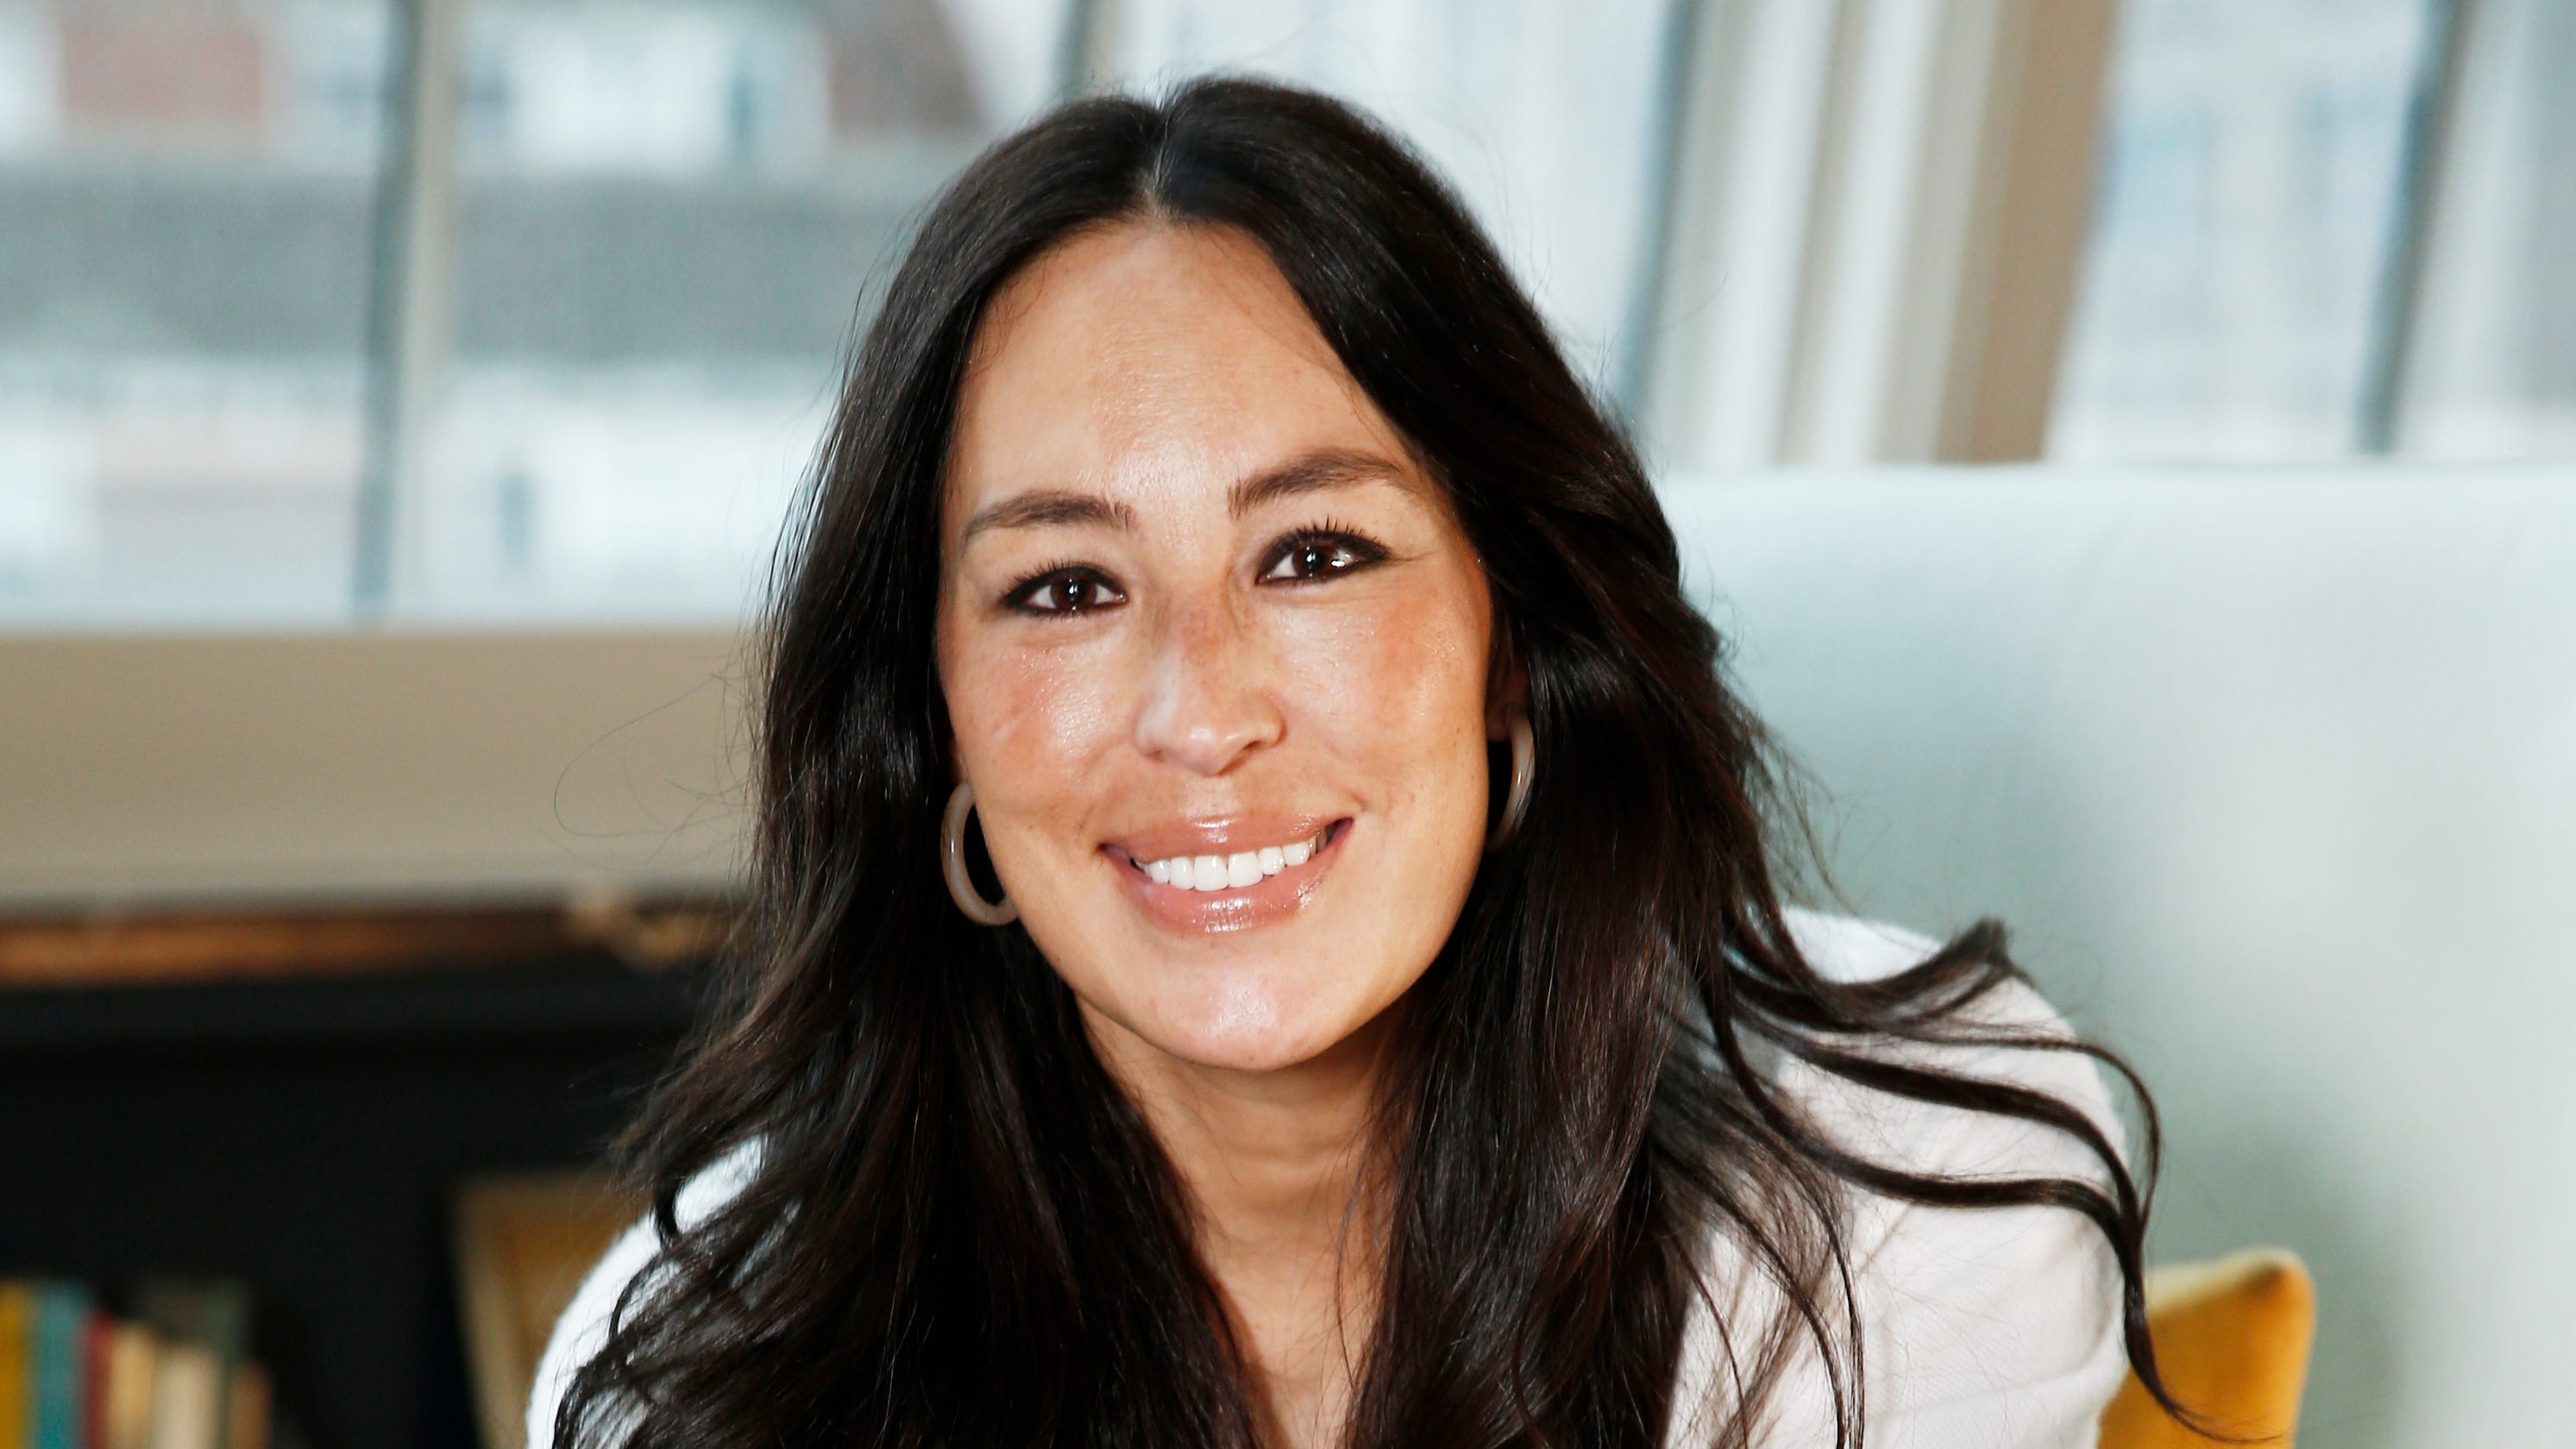 joanna gaines designs new clothing line before holidays. Black Bedroom Furniture Sets. Home Design Ideas